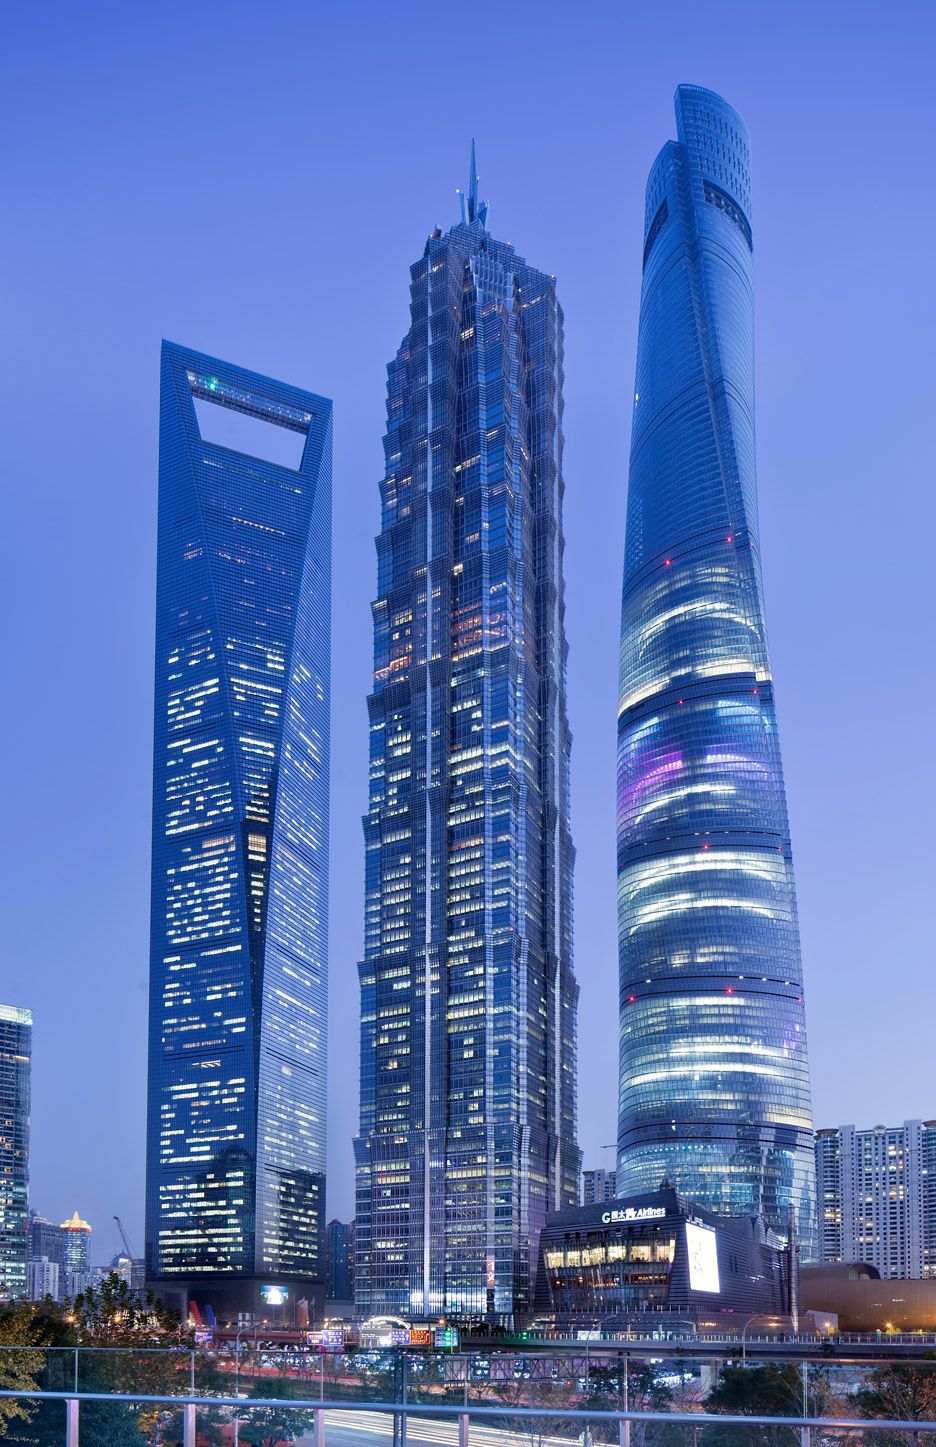 Architecture Firm Gensler Has Completed Its Shanghai Tower Which Is Now Chinas Tallest Building And The Second In World